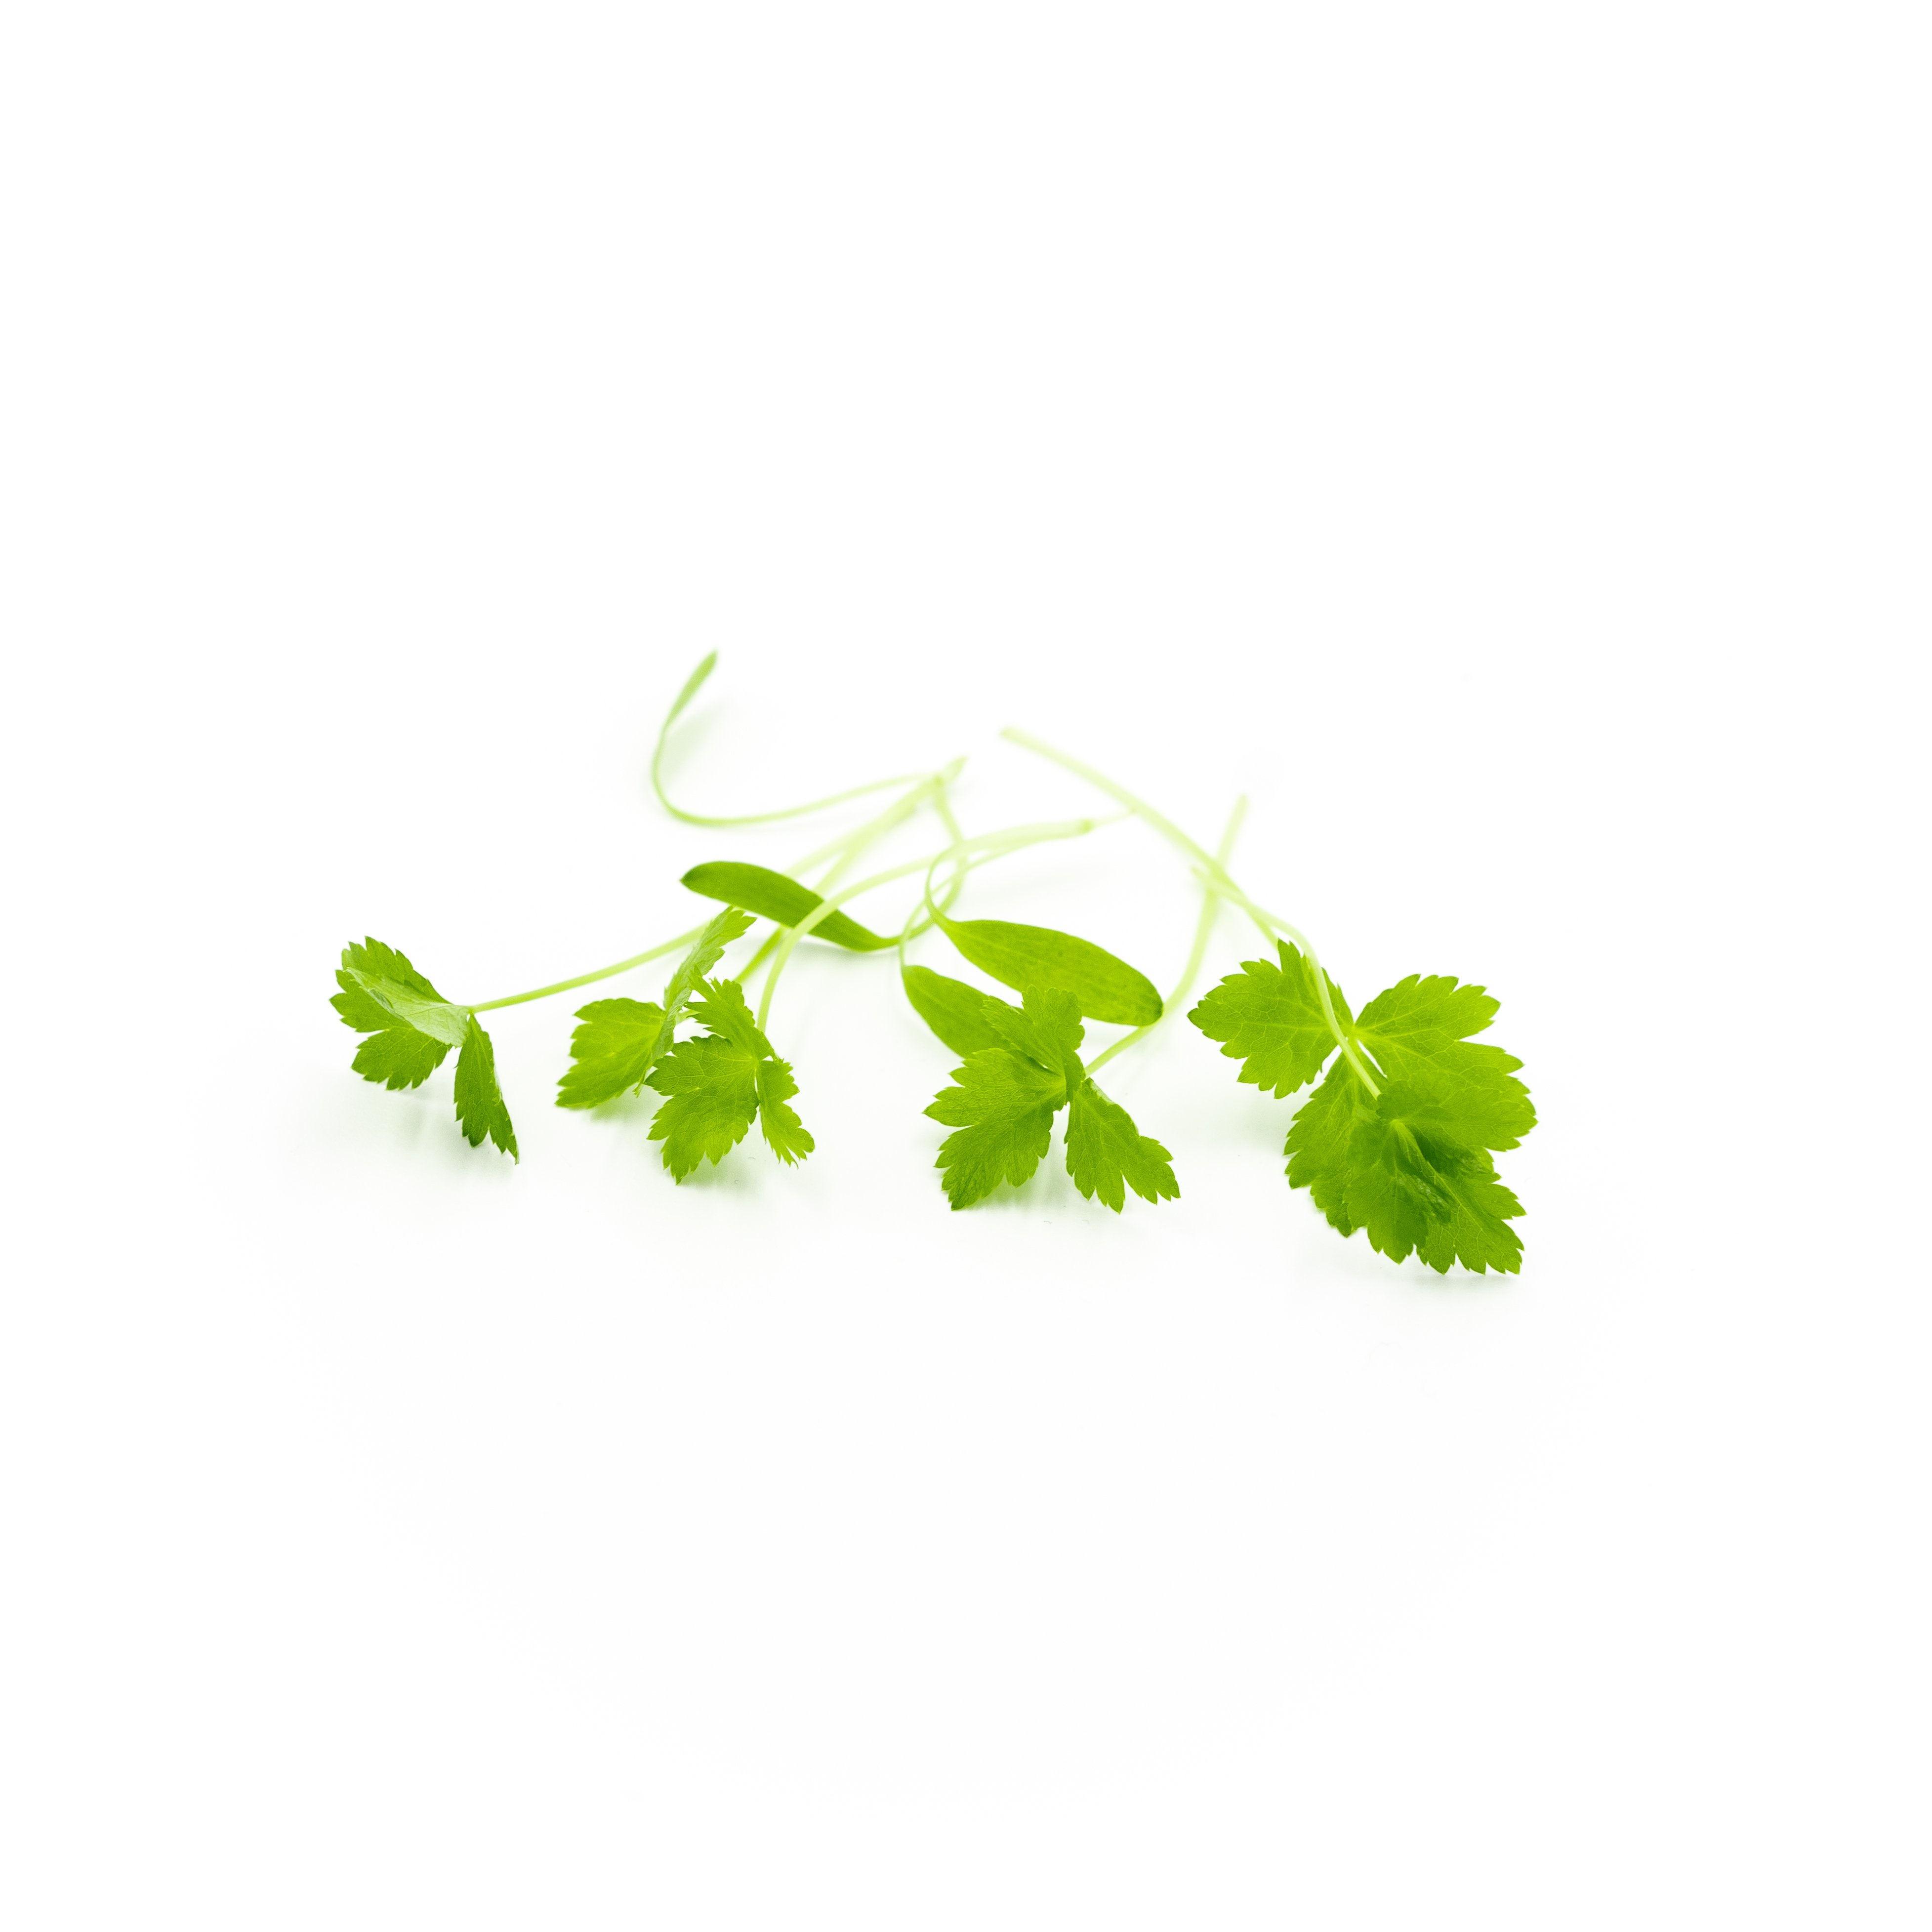 Japanese parsley and celery flavors in bright green leaves